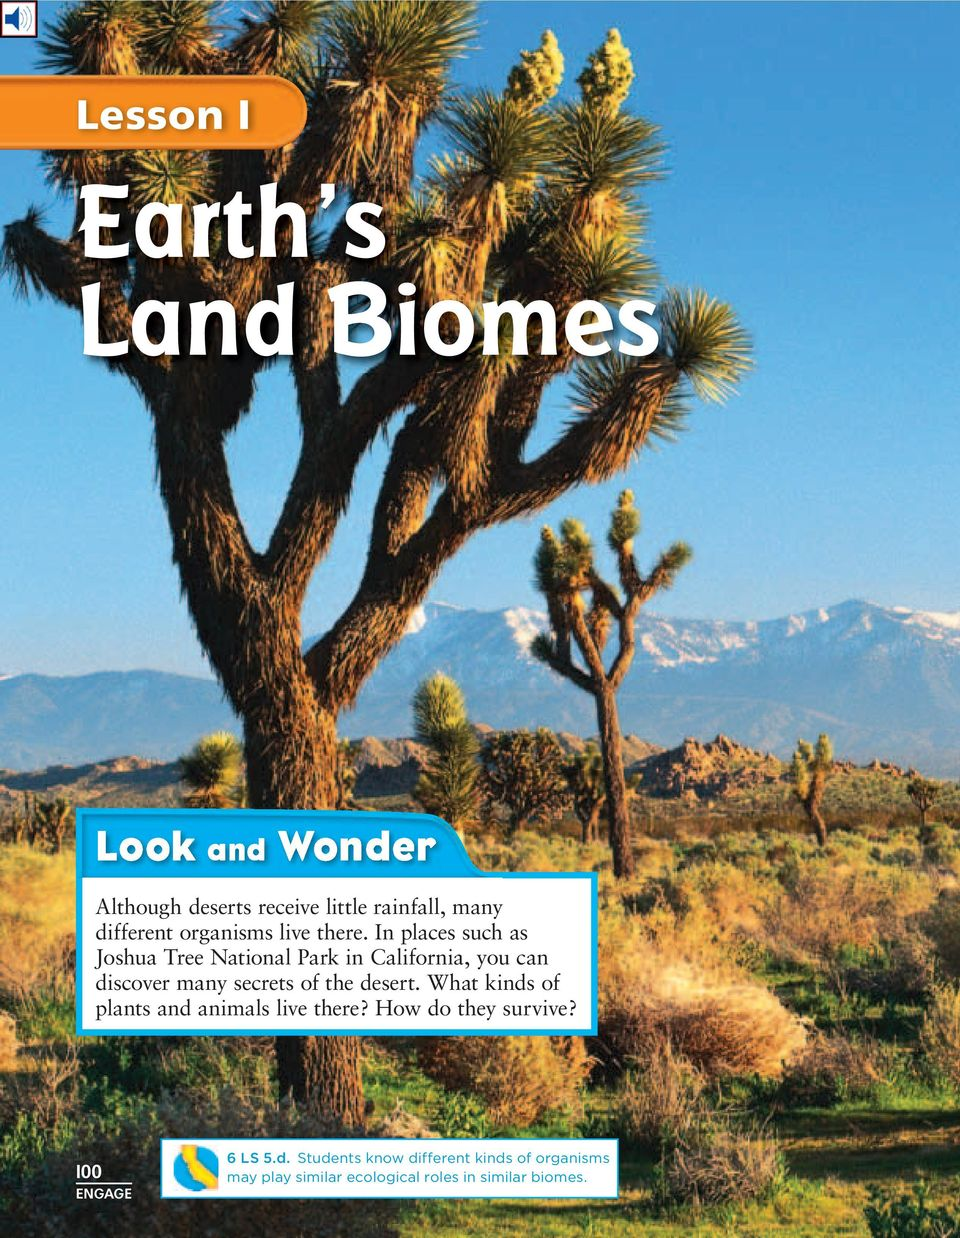 In places such as Joshua Tree National Park in California, you can discover many secrets of the